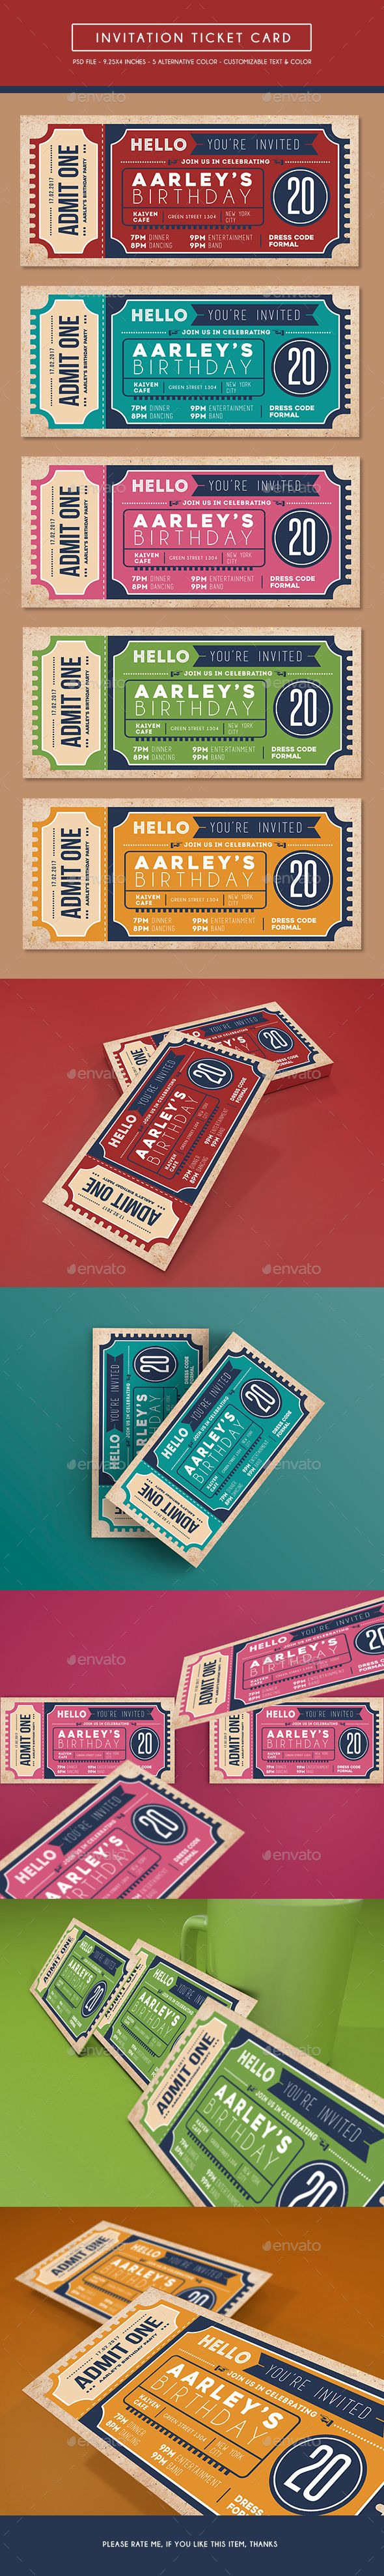 Invitation Ticket — Photoshop PSD #concert #celebrate • Available here → https://graphicriver.net/item/invitation-ticket-/14968921?ref=pxcr